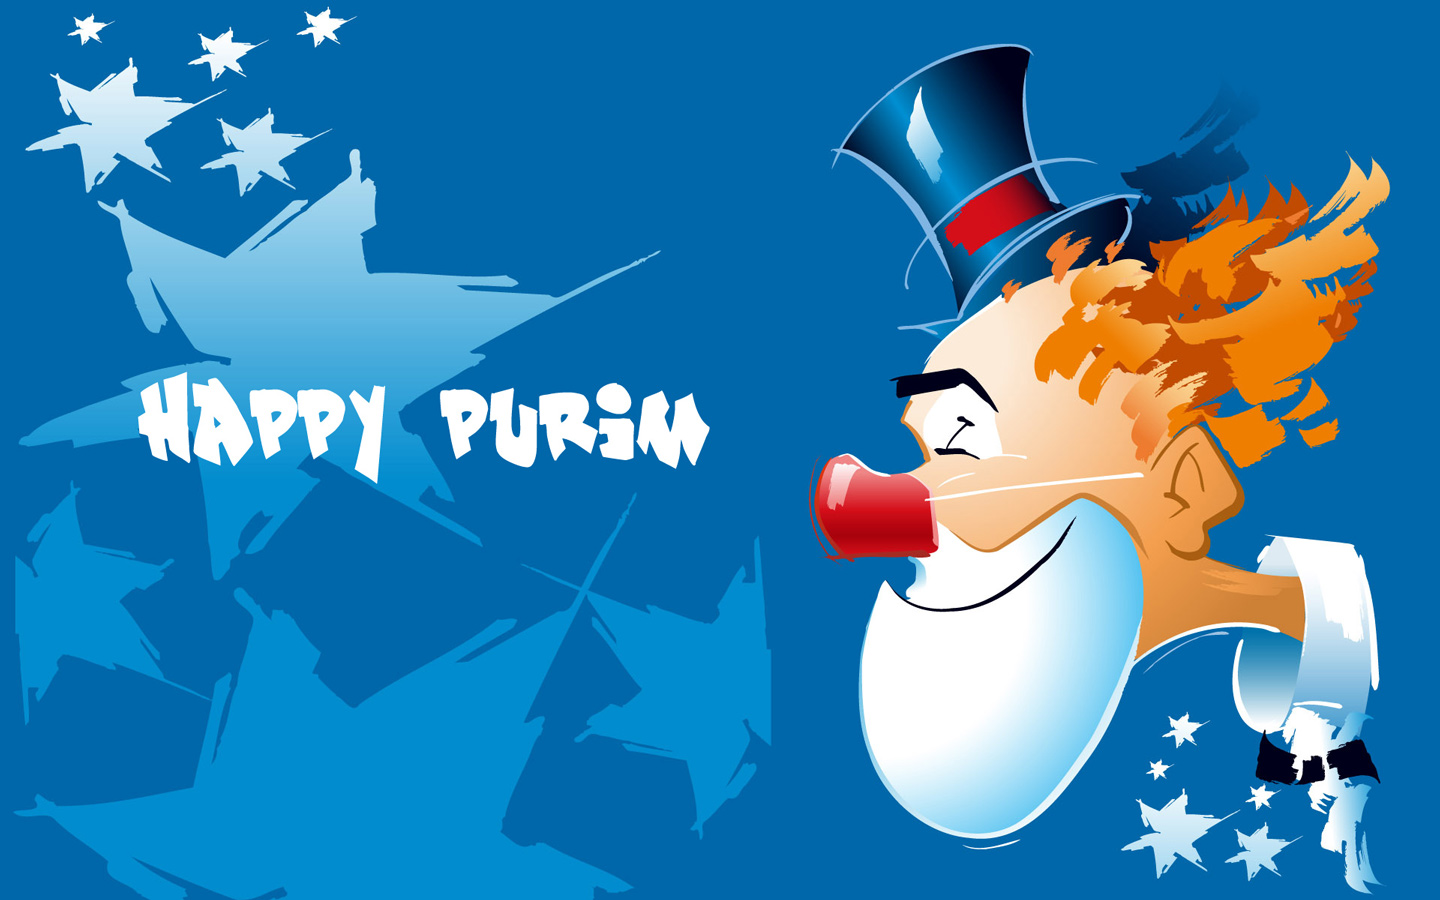 Jewish Holiday Purim computer desktop wallpapers pictures 1440x900